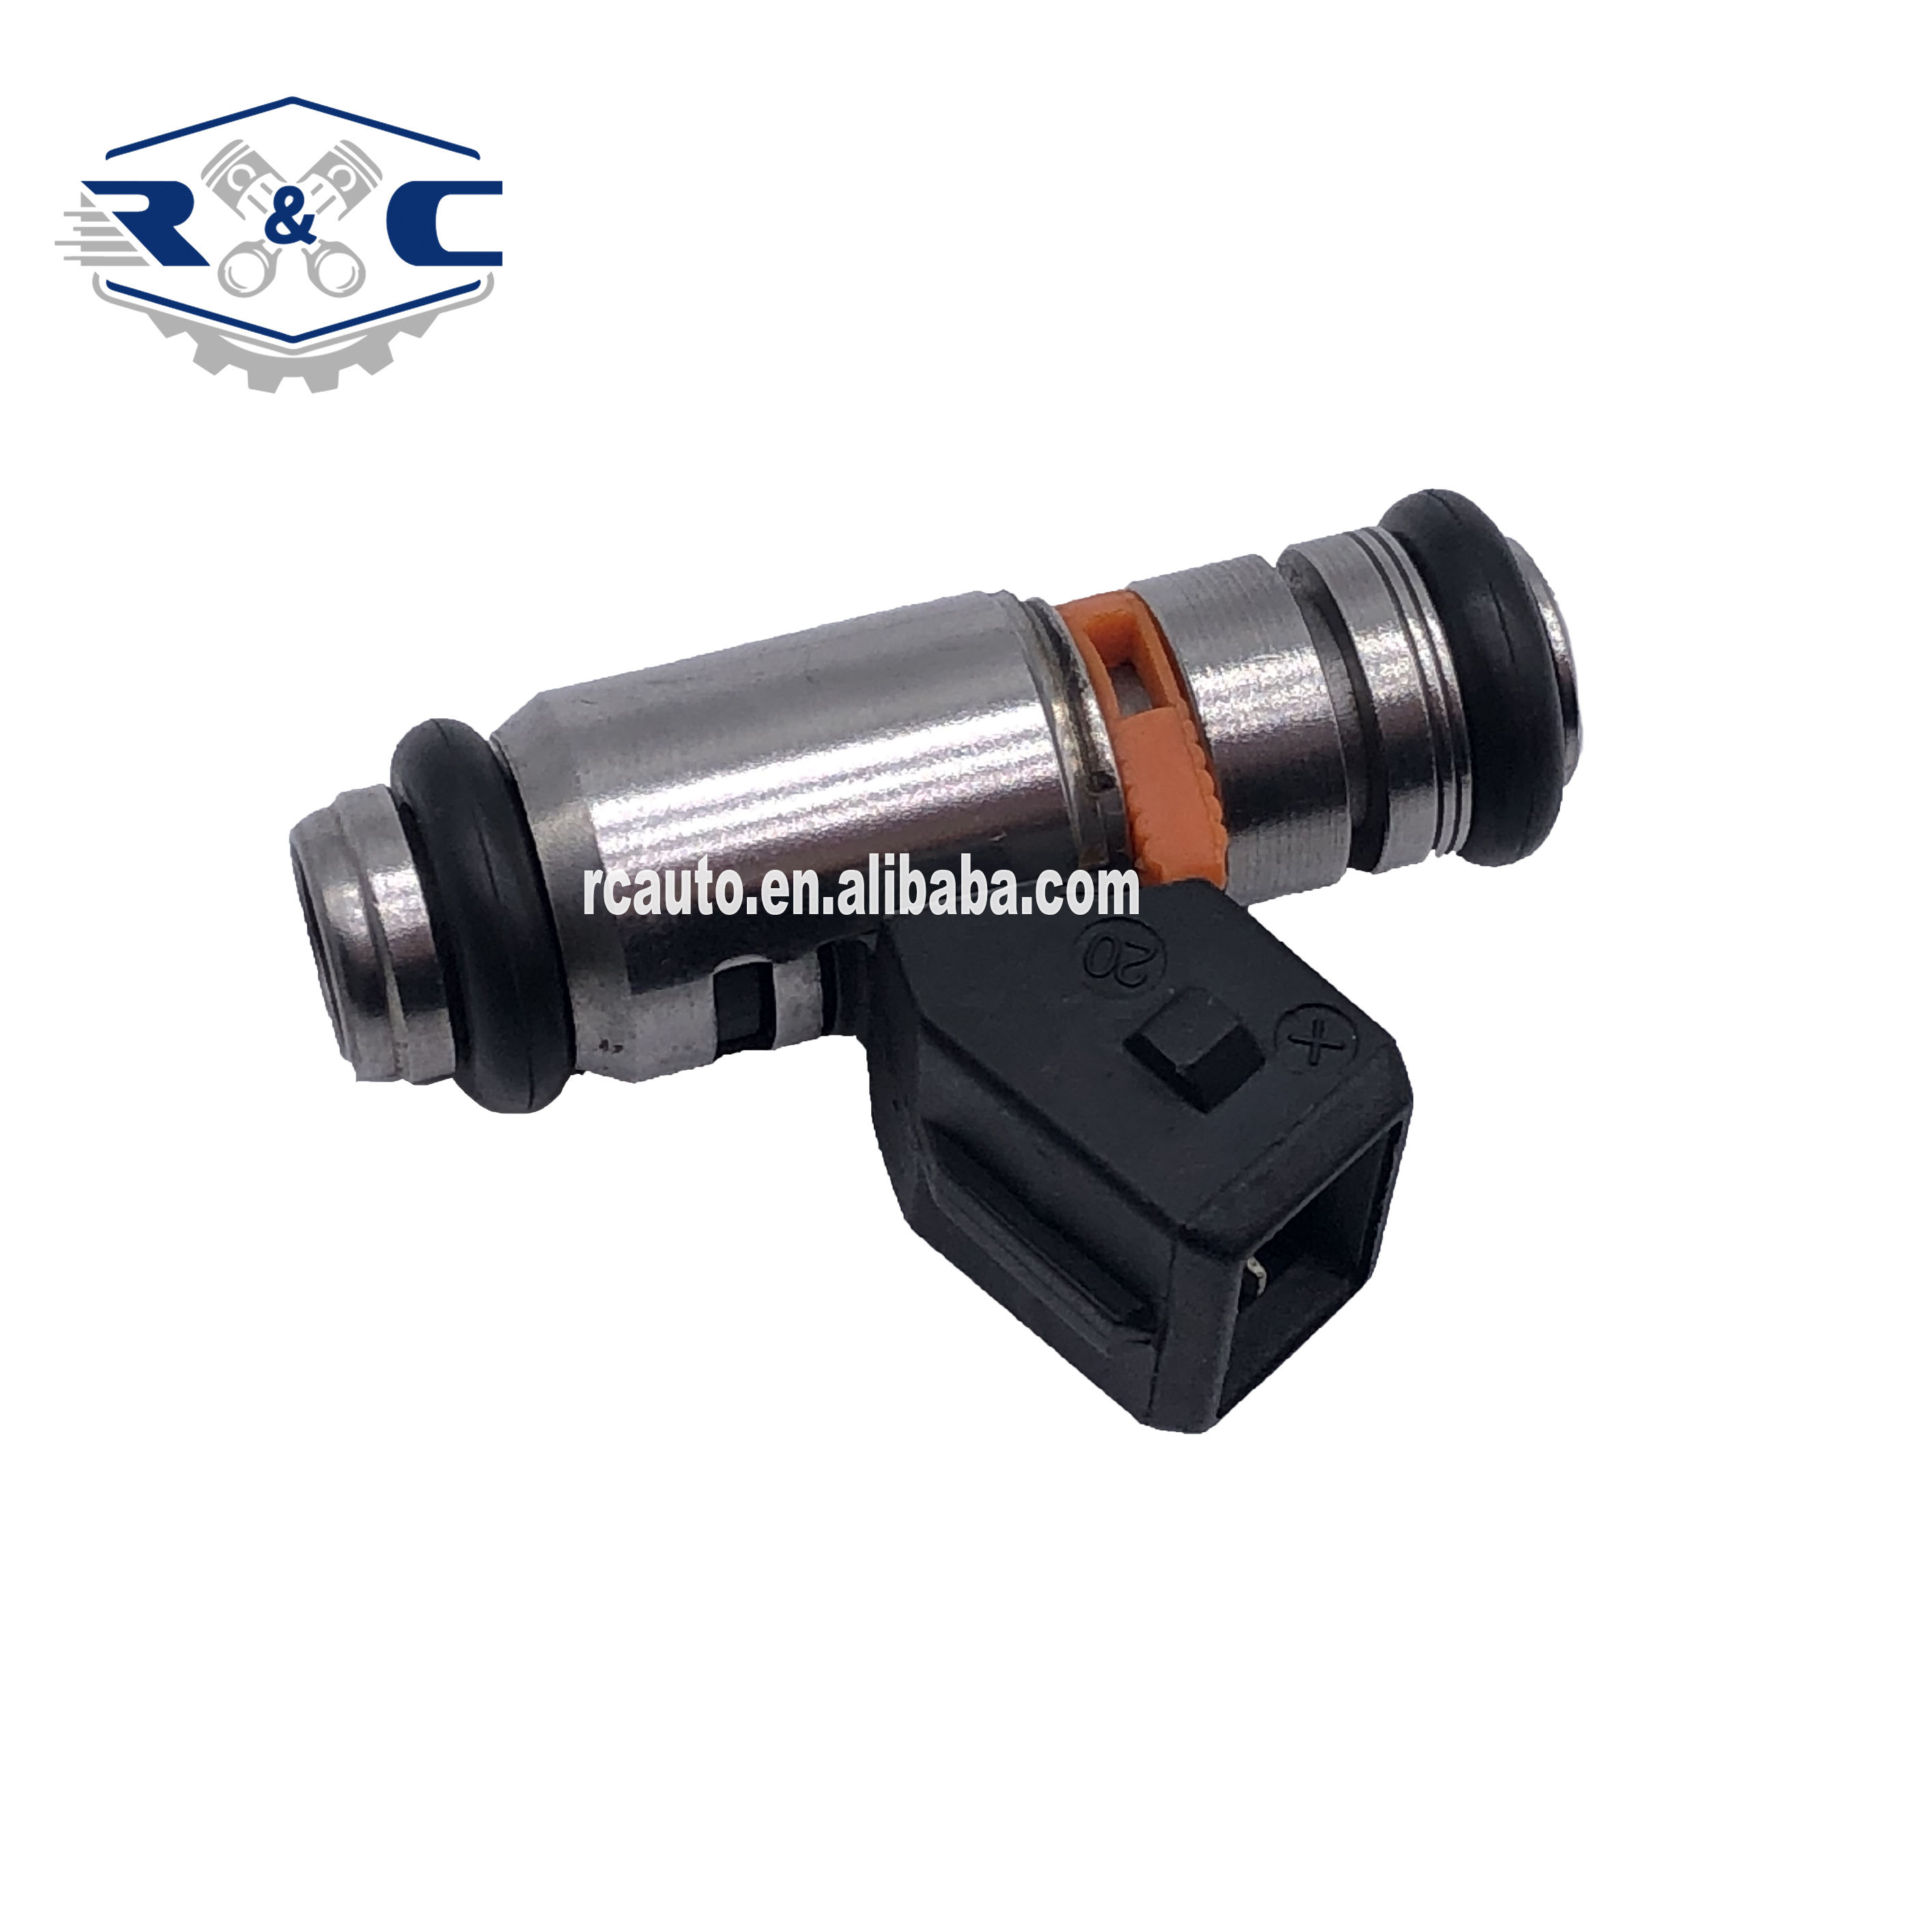 R&C High Quality Nozzle 2N1U9F593JA 1221551 IWP127 50103302 professional tested For Ford Fiesta Ecosport Gasoline Fuel Injector